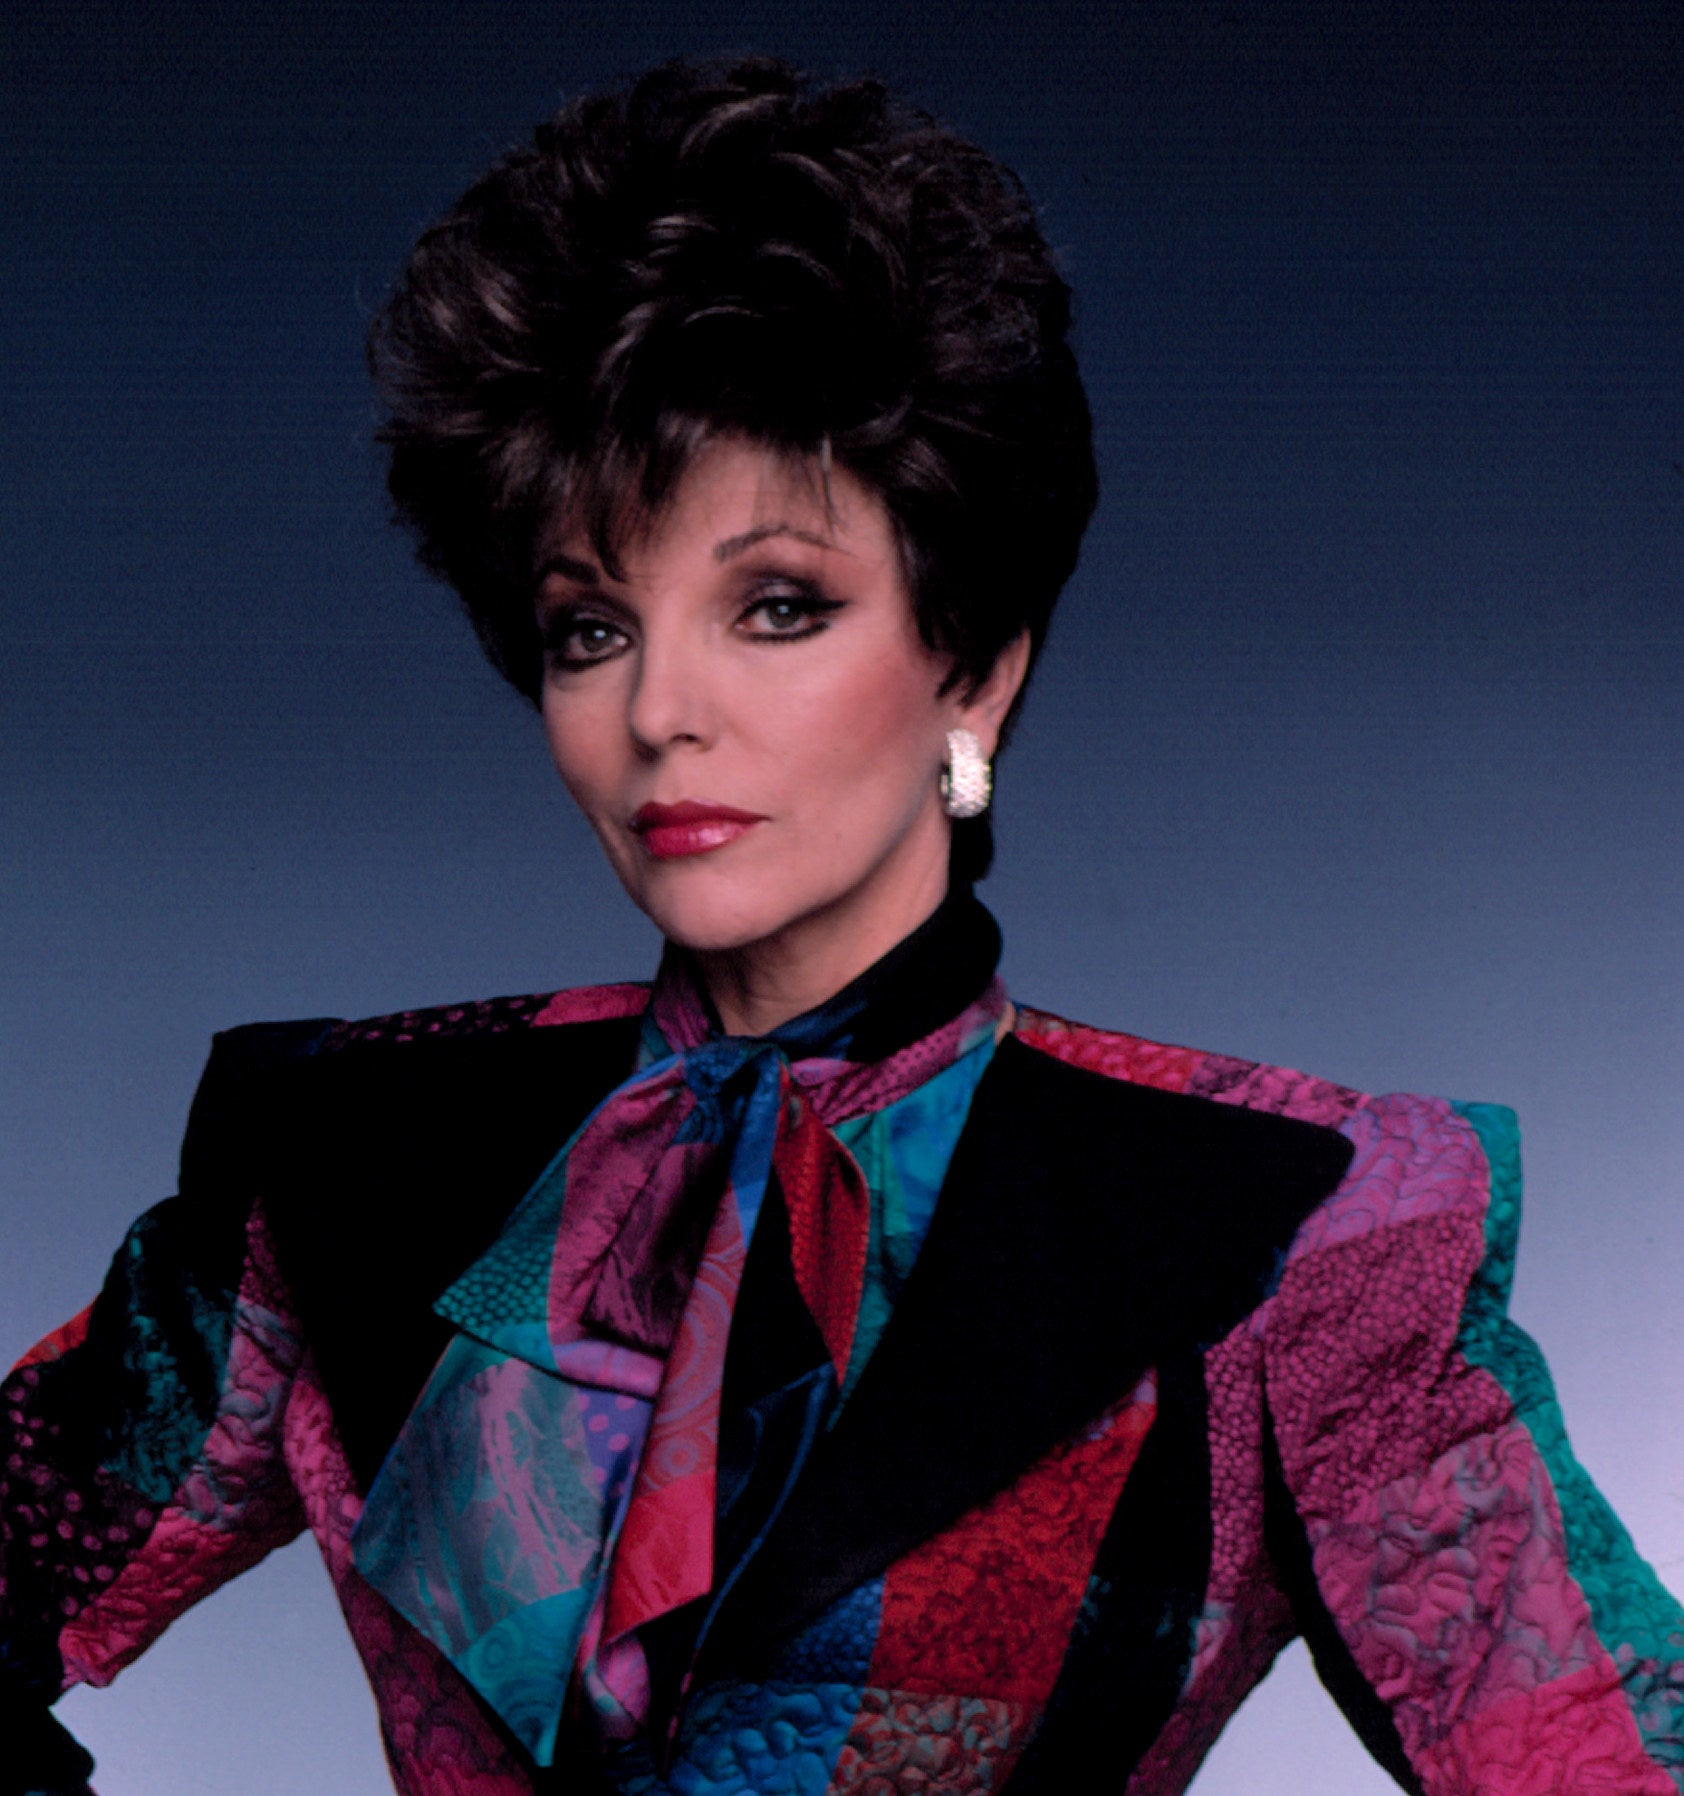 A publicity photo of Joan Collins as Alexis Carrington